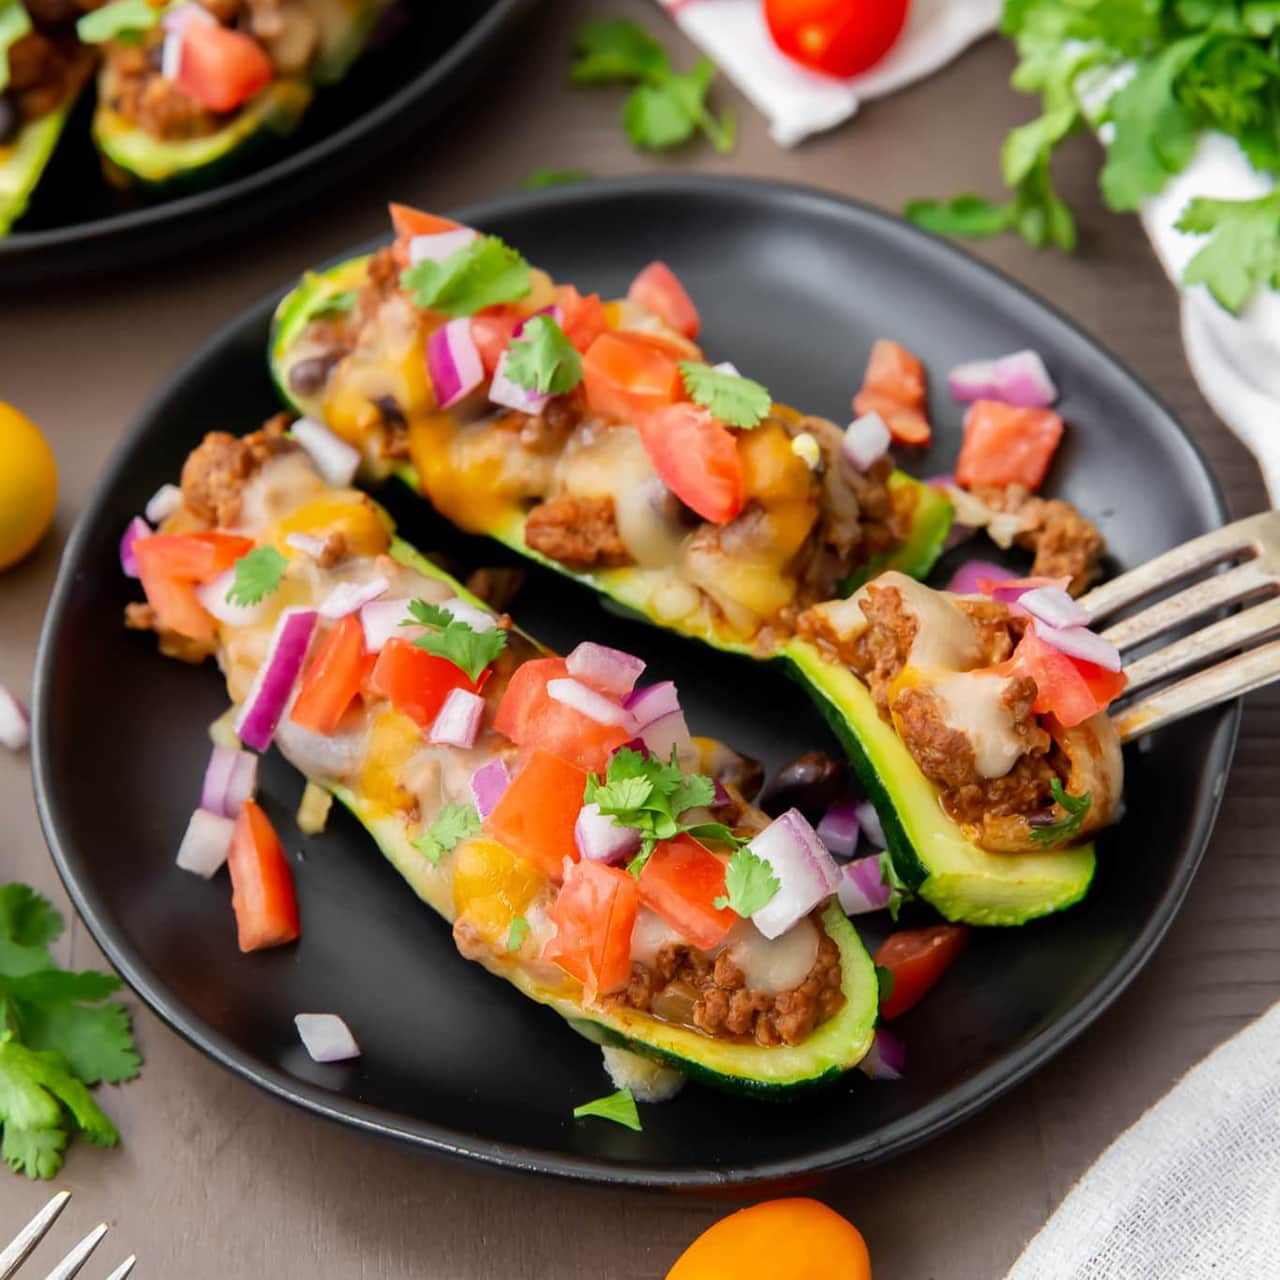 This delicious Taco Zucchini Boats recipe uses fresh zucchini stuffed with taco meat and all your favorite toppings.